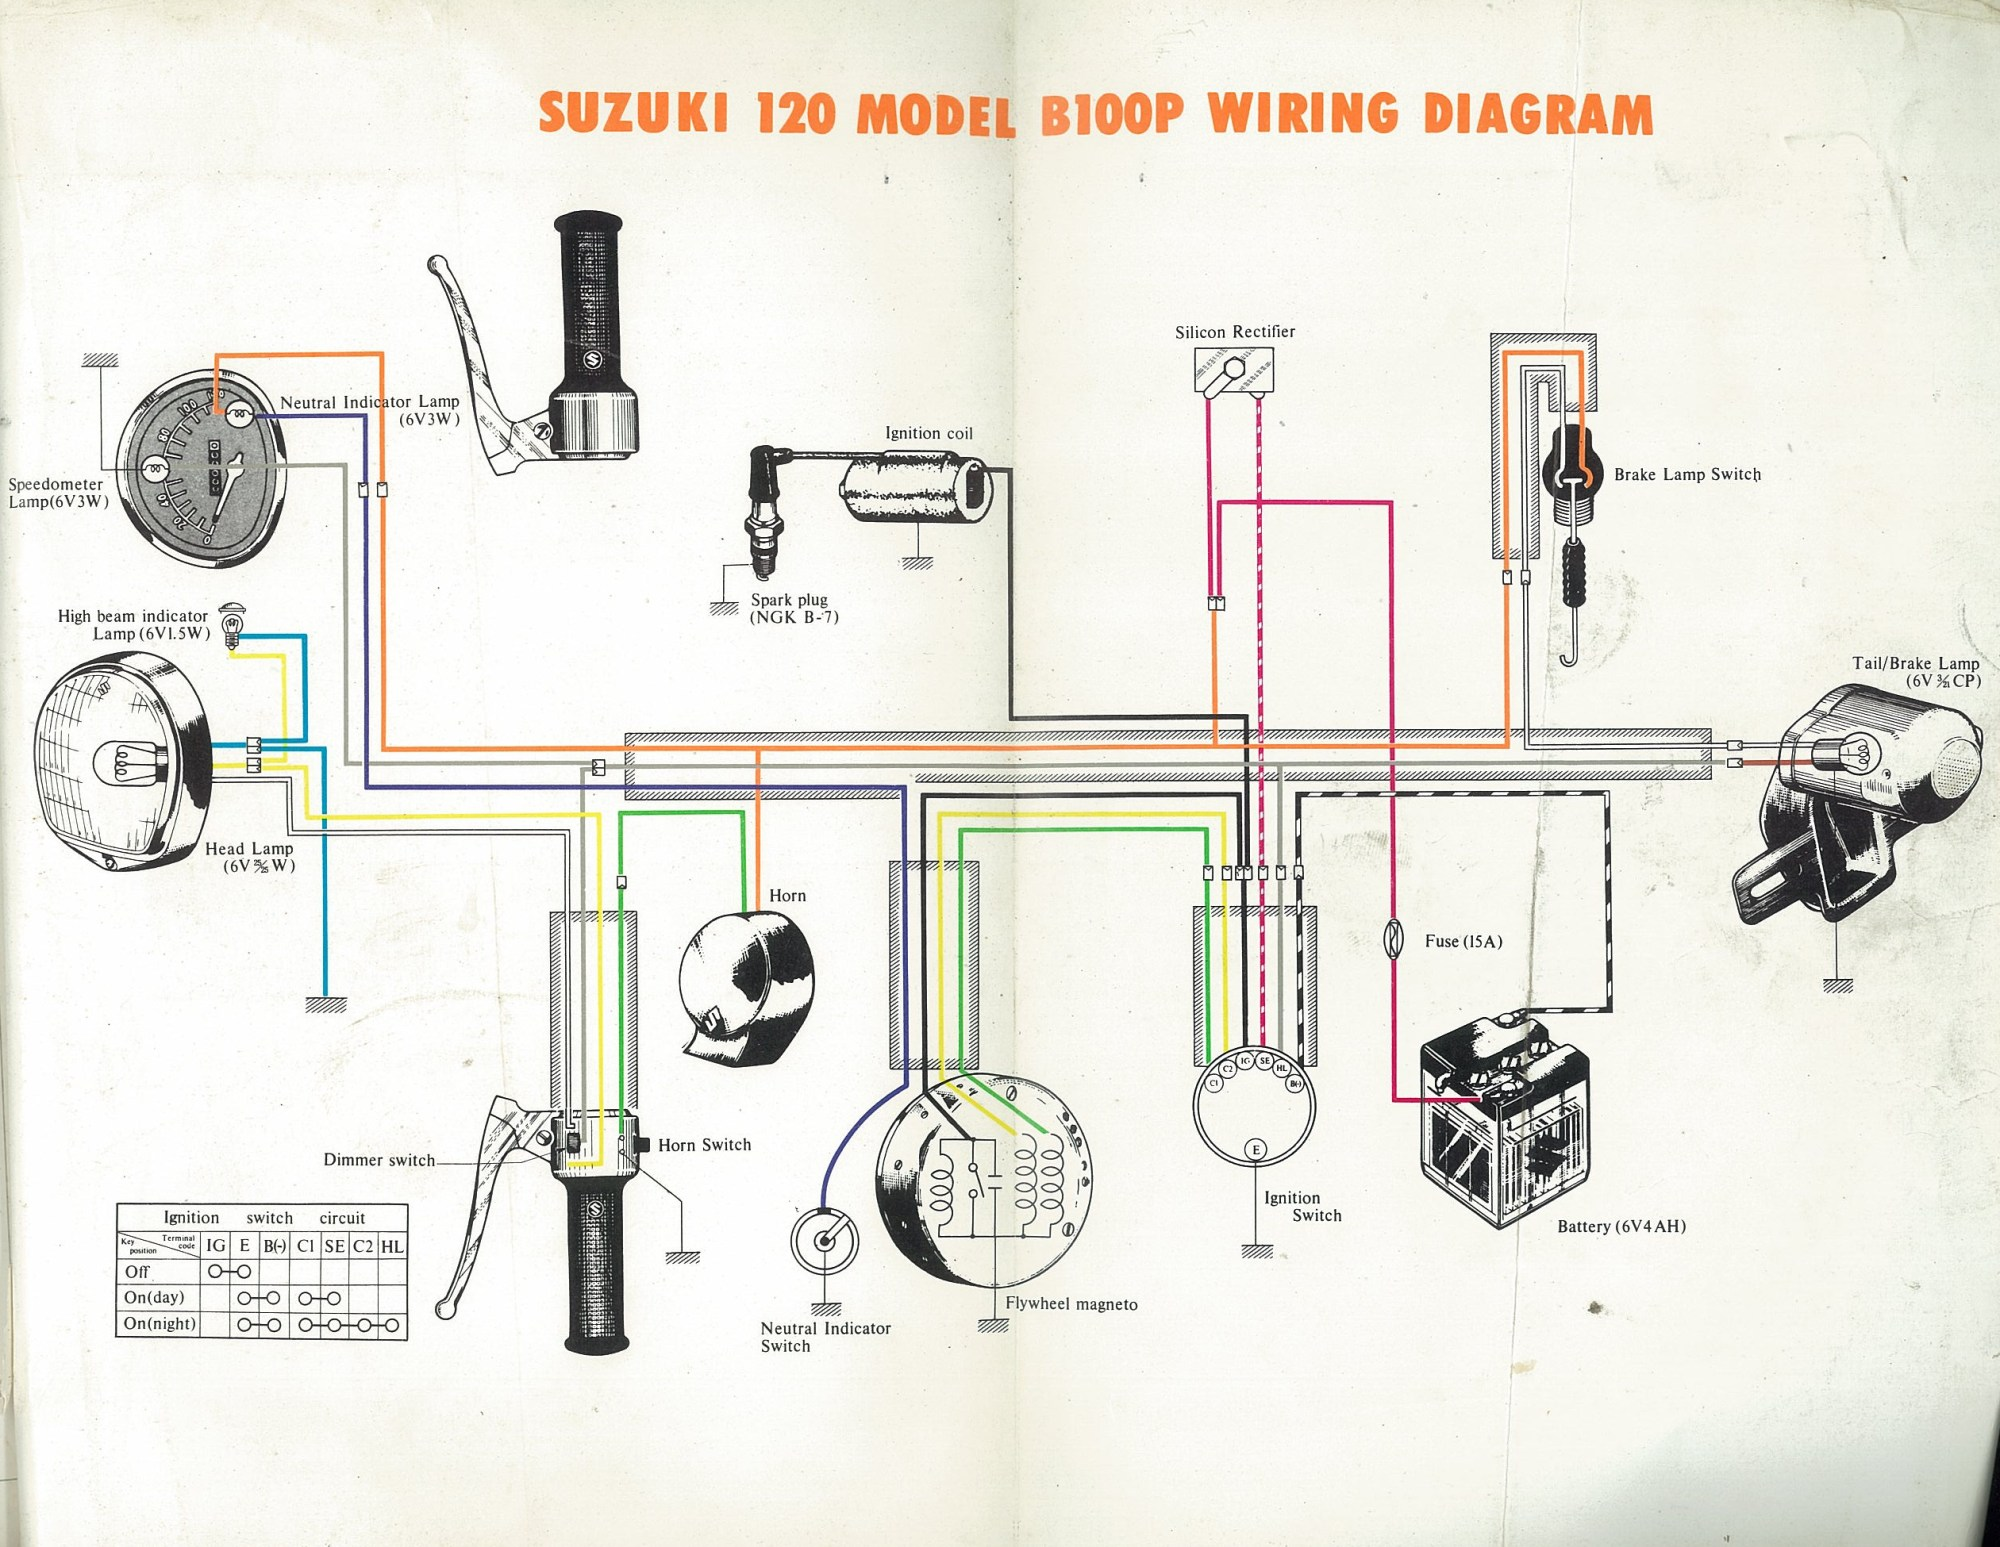 hight resolution of 1972 suzuki t500 wiring diagram wiring diagramsuzuki access 125 wiring diagram my wiring diagramsuzuki access 125